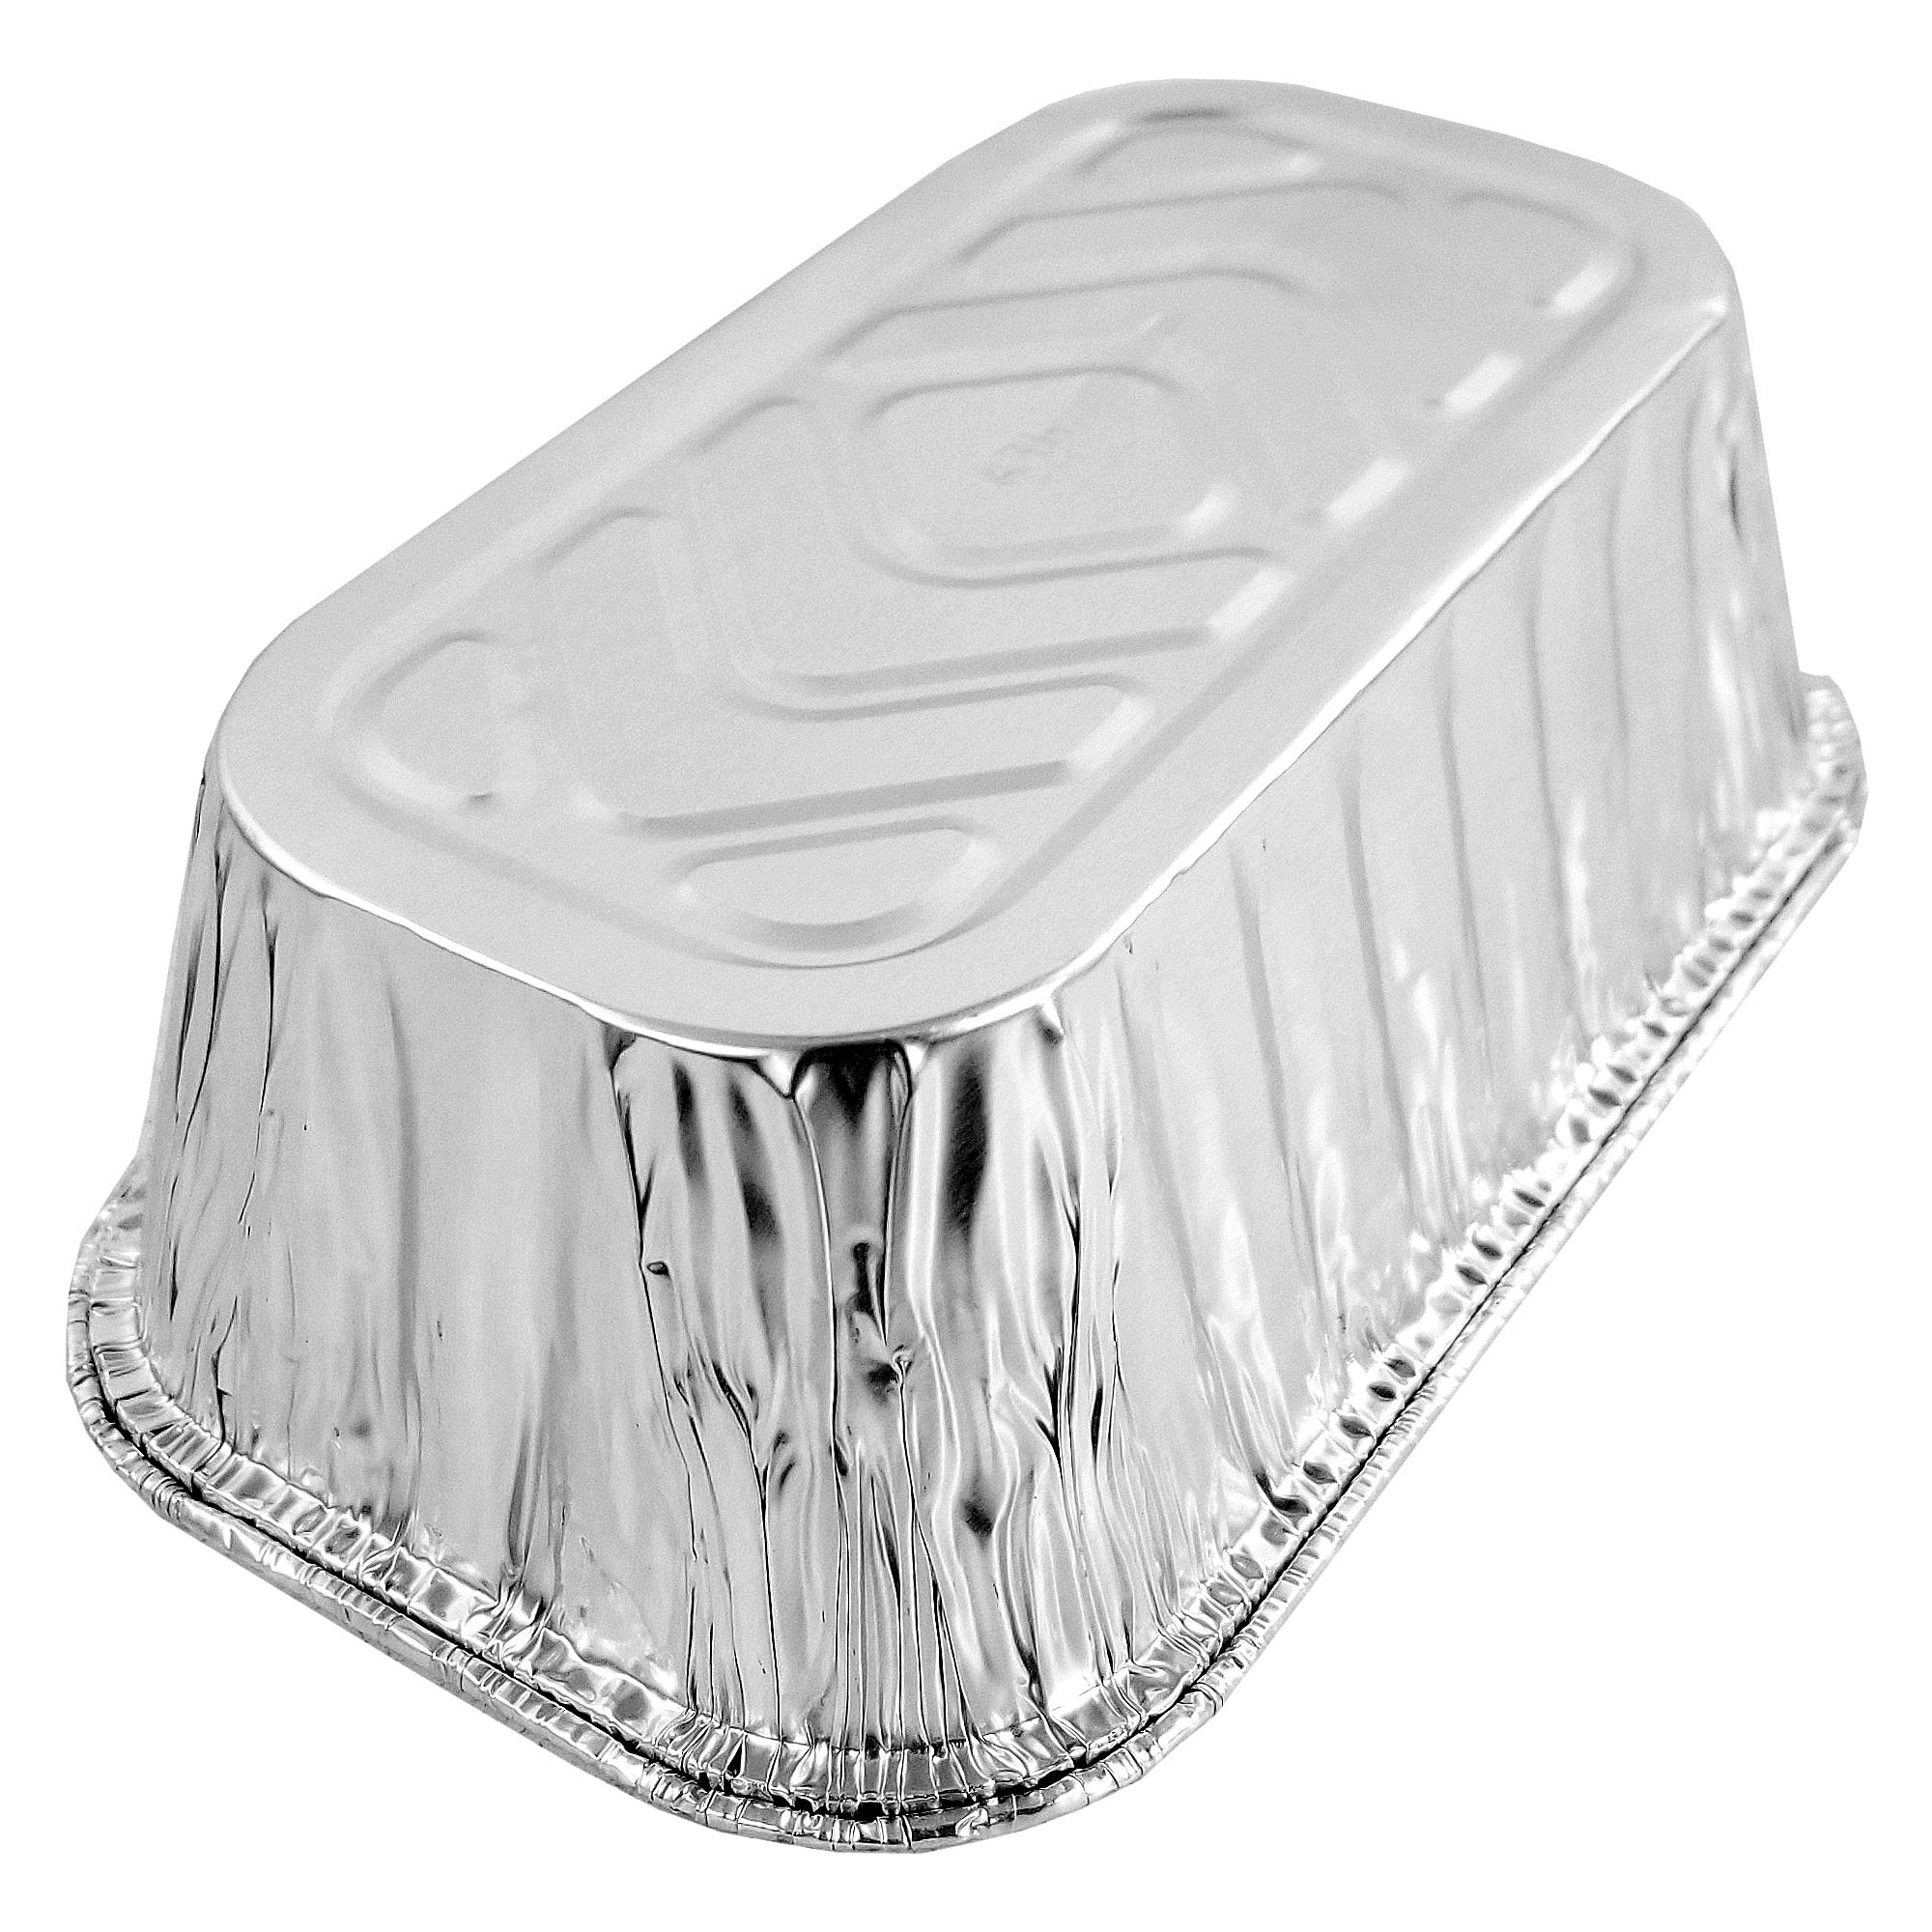 Pactogo Disposable 1 lb. Aluminum Foil Mini Loaf Pans with Clear Low Dome Lids (Pack of 400 Sets) by PACTOGO (Image #8)